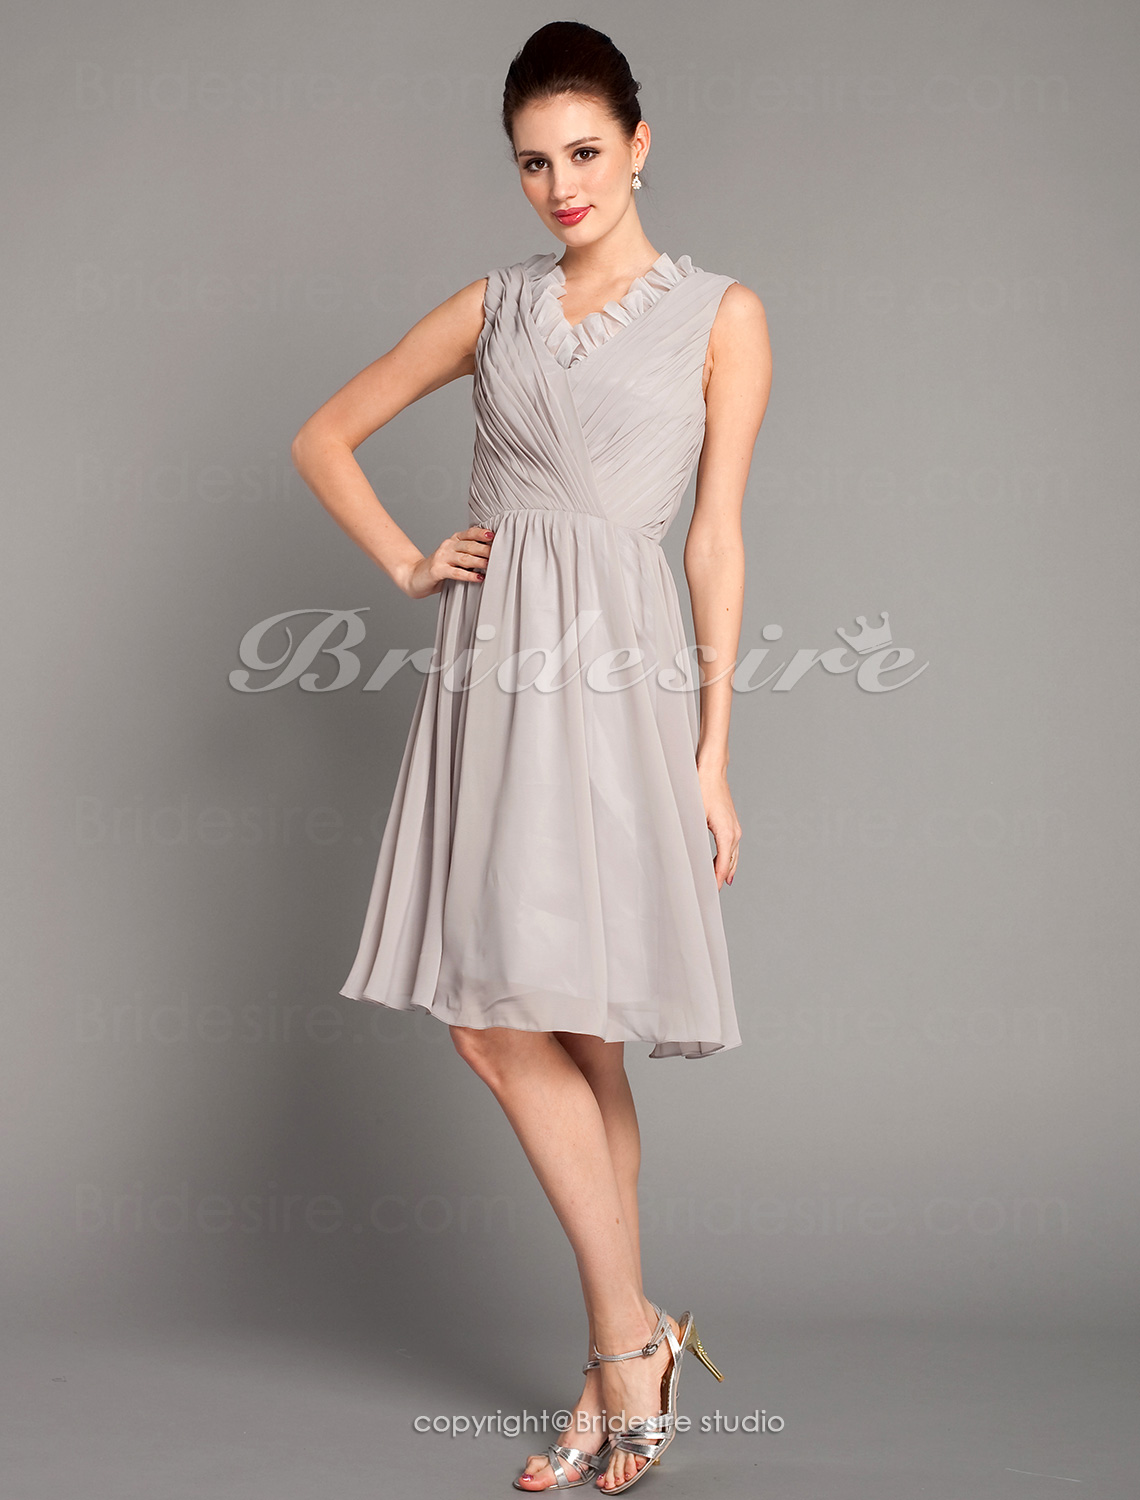 A-line Chiffon Knee-length V-neck Cocktail Dress